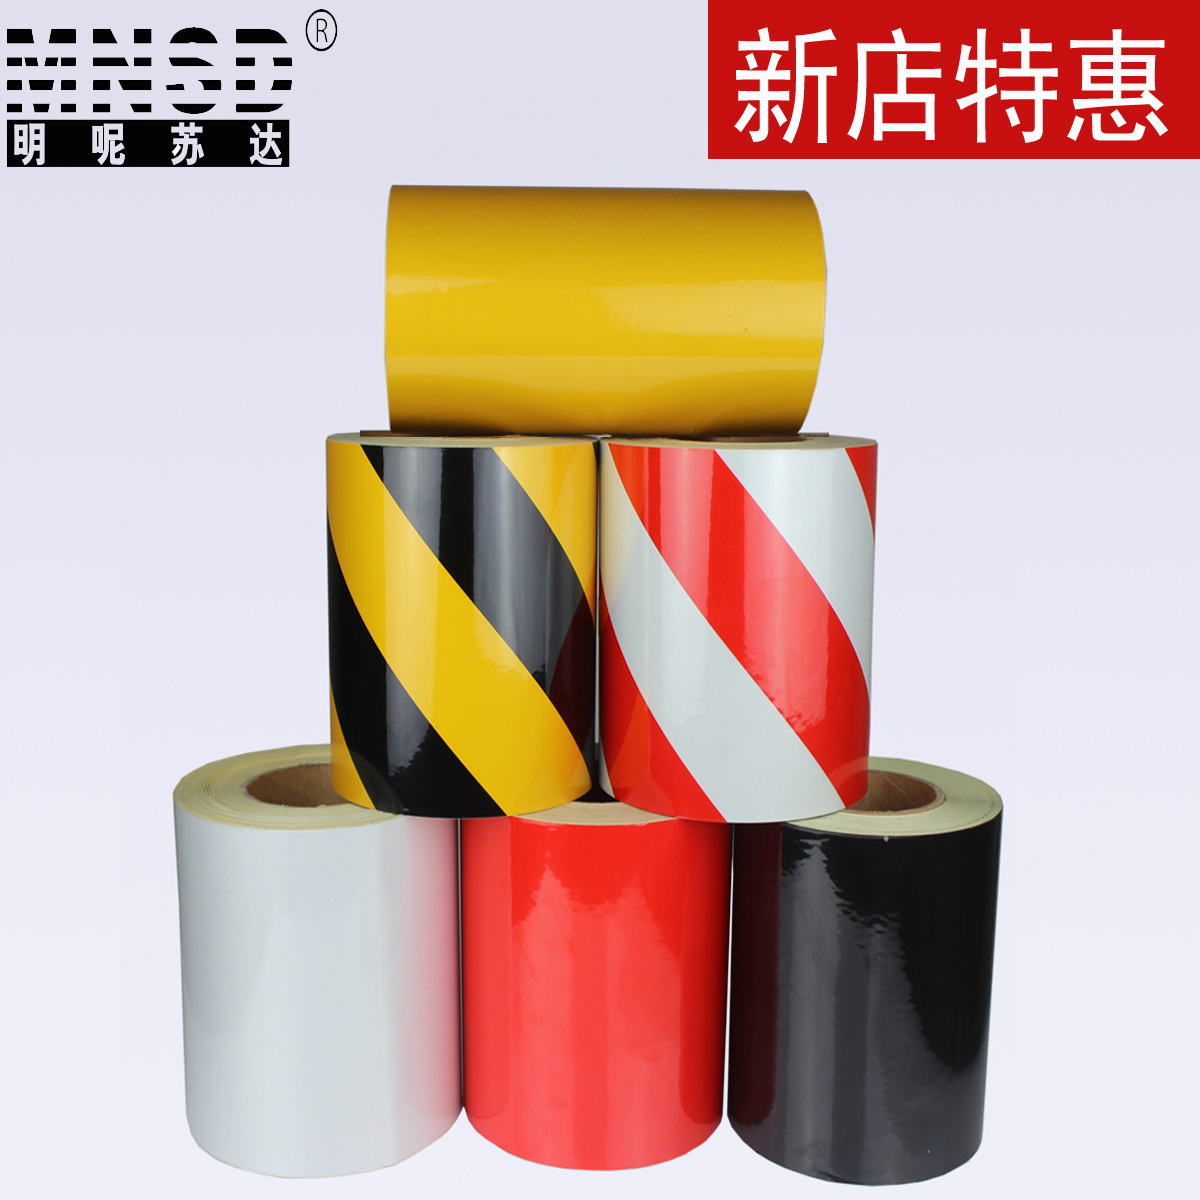 Mnsd 20CM reflective tape 3100 cm reflective film reflective stickers warning column steel color optional genuine